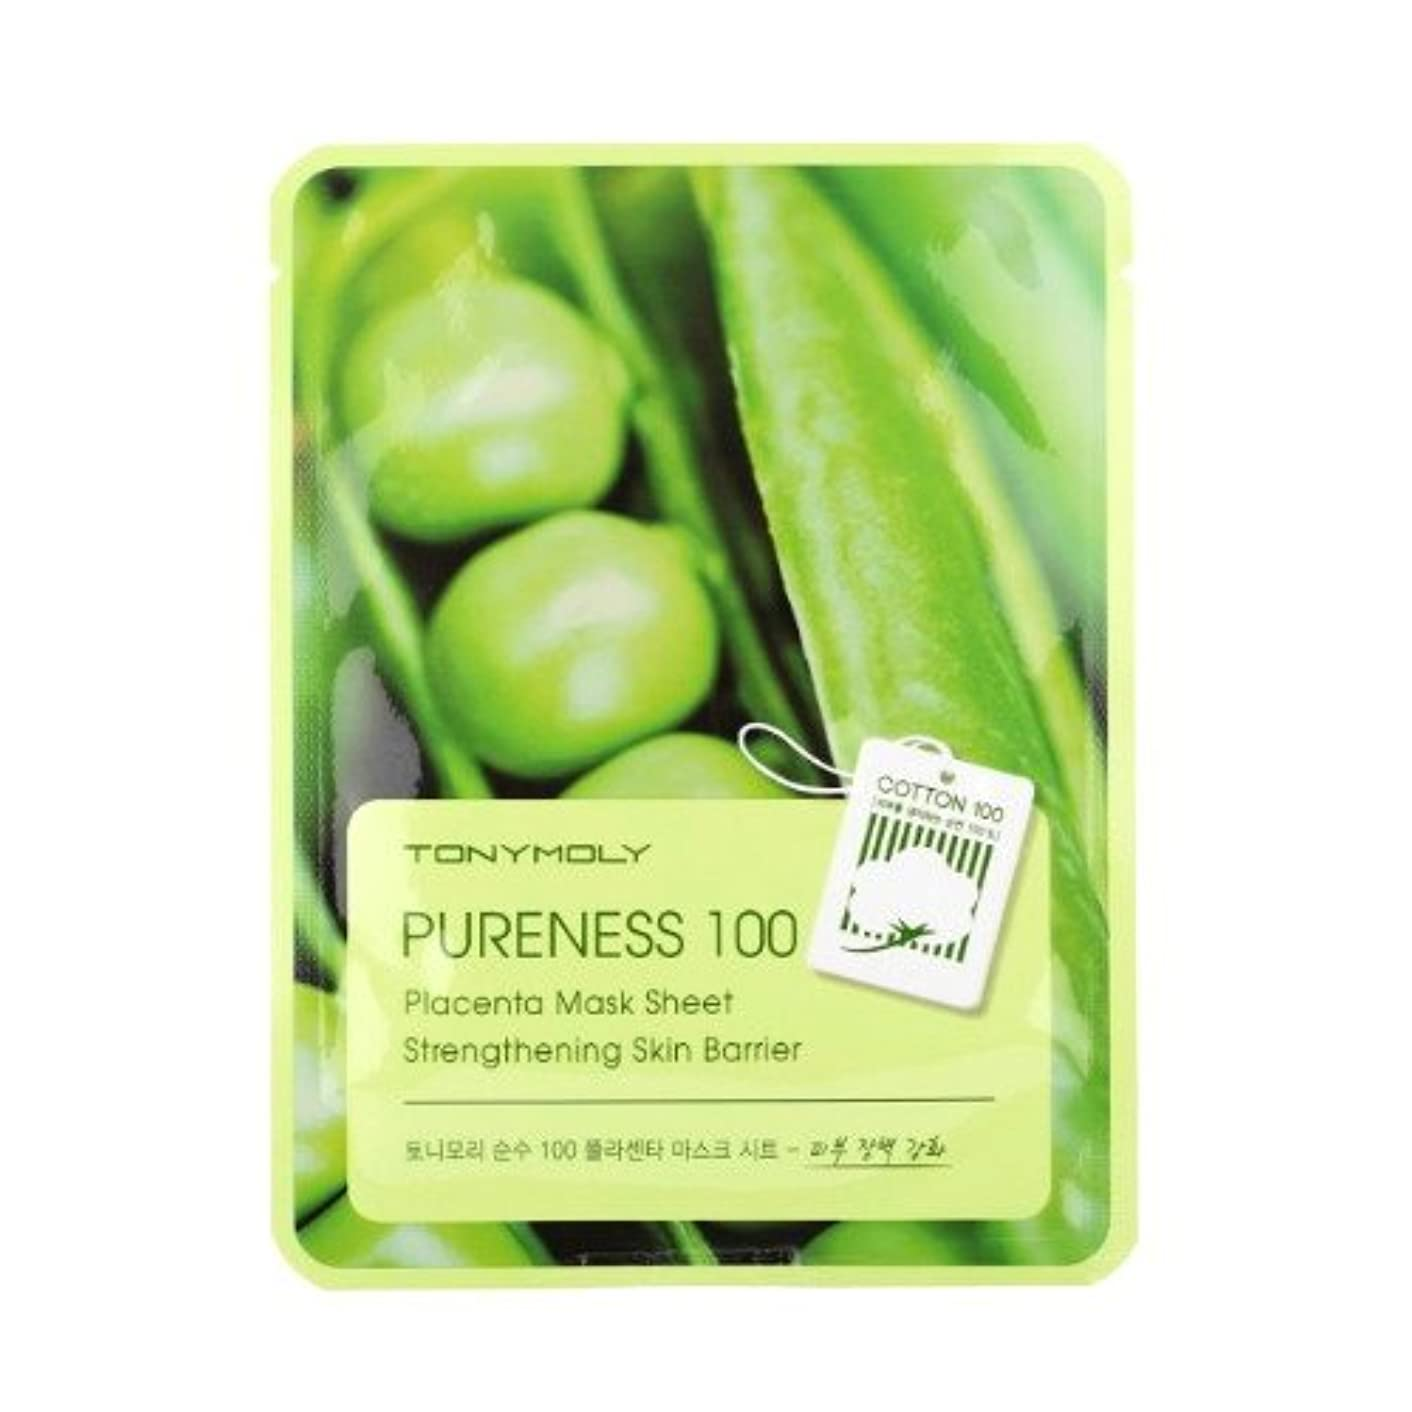 休眠挨拶スポンサー(3 Pack) TONYMOLY Pureness 100 Placenta Mask Sheet Strengthening Skin Barrier (並行輸入品)